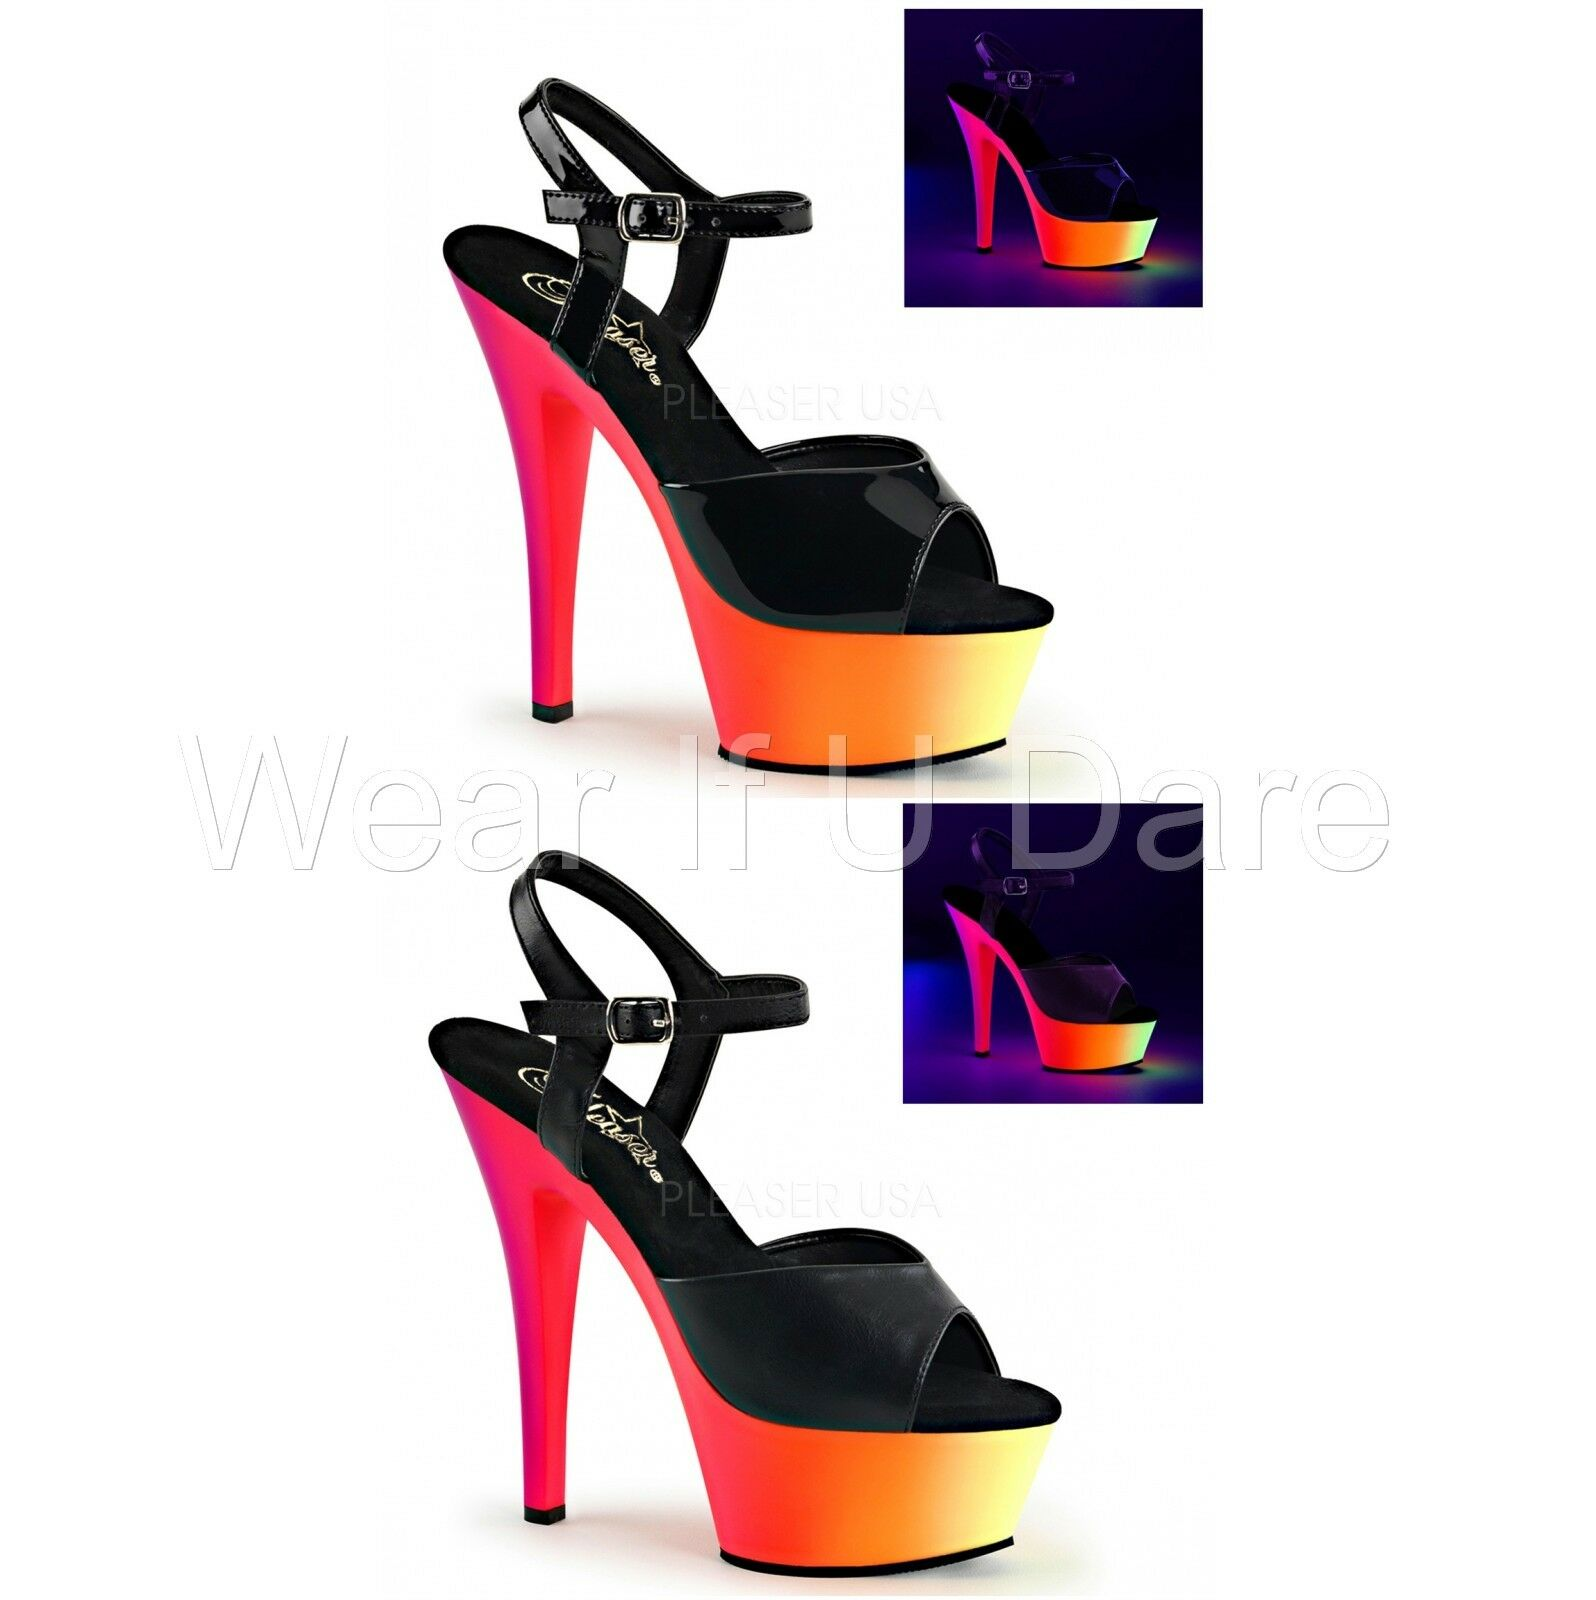 PLEASER RAINBOW-209UV BLACK PLATFORM POLE DANCING STILETTO HEEL Schuhe SANDALS